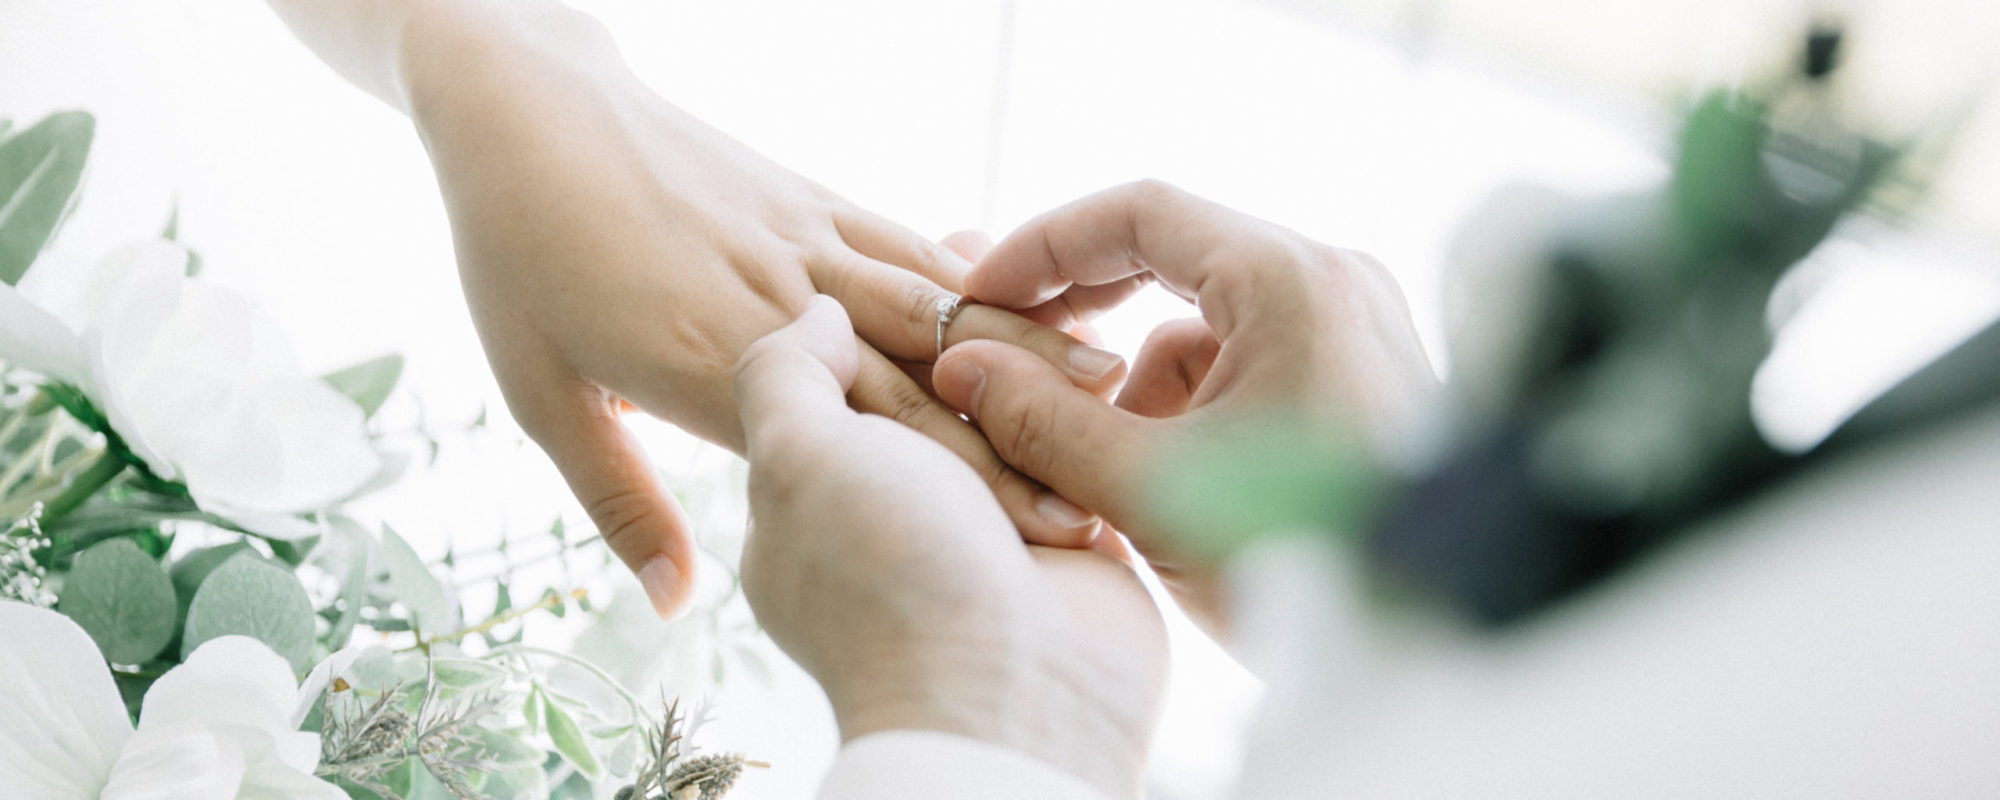 Exchanging of rings at a wedding ceremony